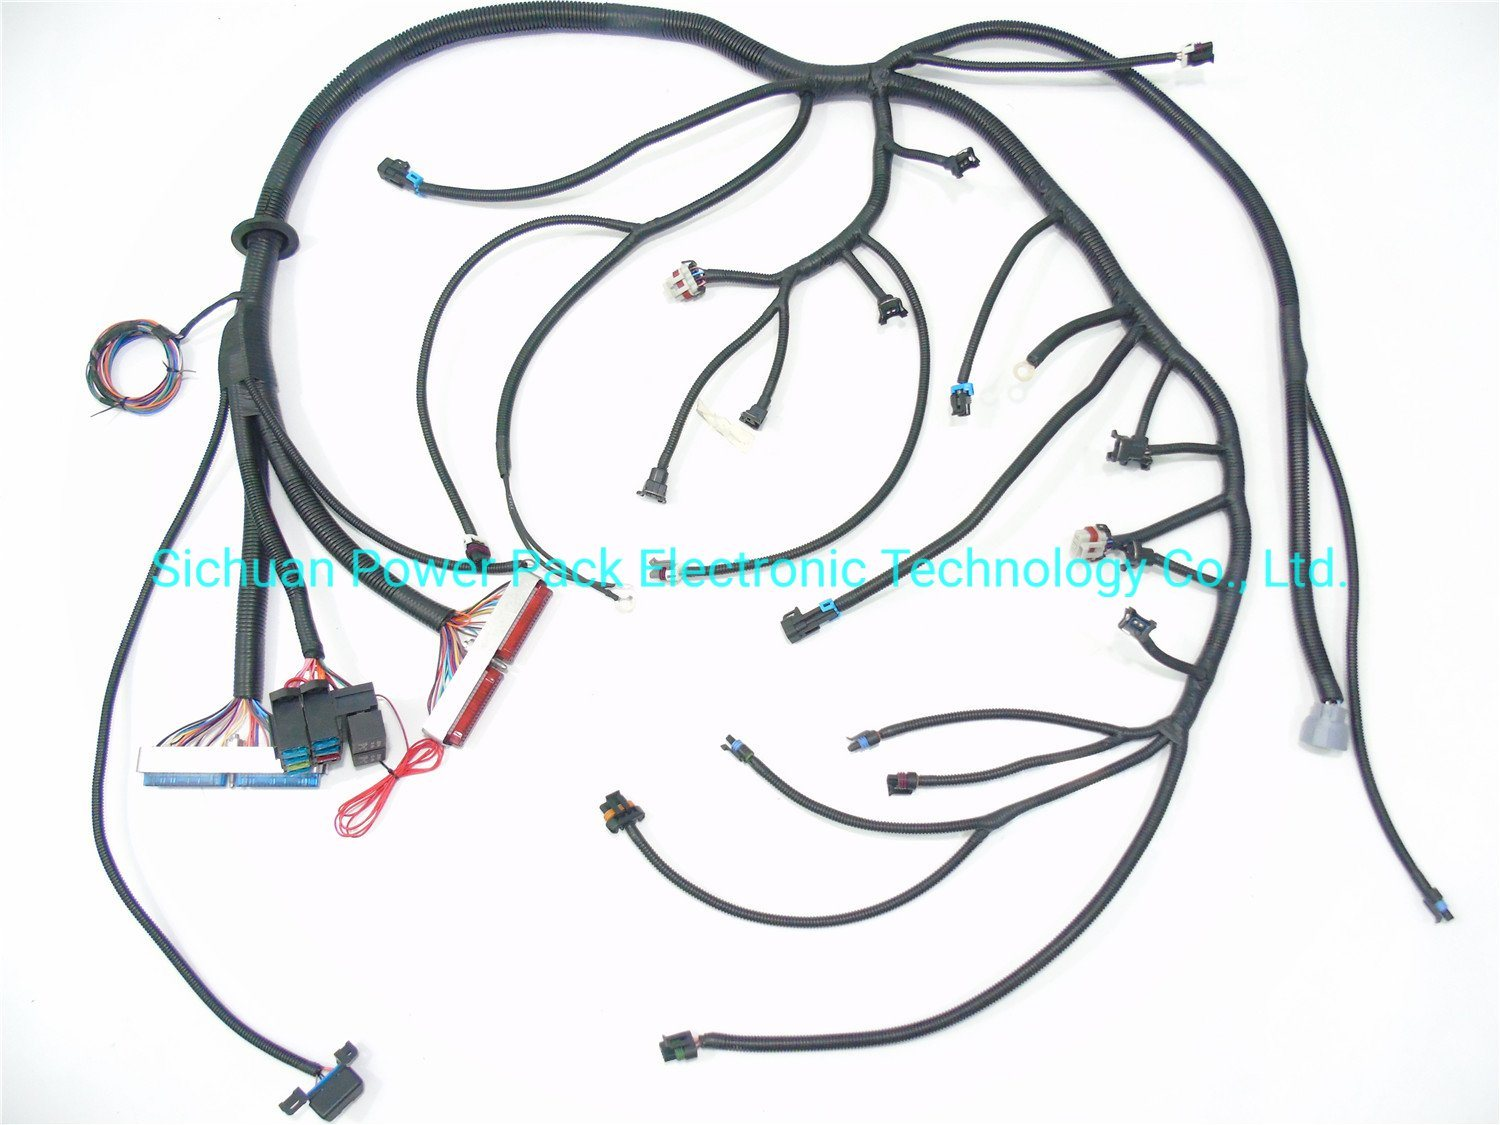 China Ls1 99-03 Vortec 4.8 5.3 6.0 Standalone Wiring Harness W/4L80e (DBC)  Ls - China Ls Wire Harness, Wiring HarnessSichuan Power Pack Electronic Technology Co., Ltd.